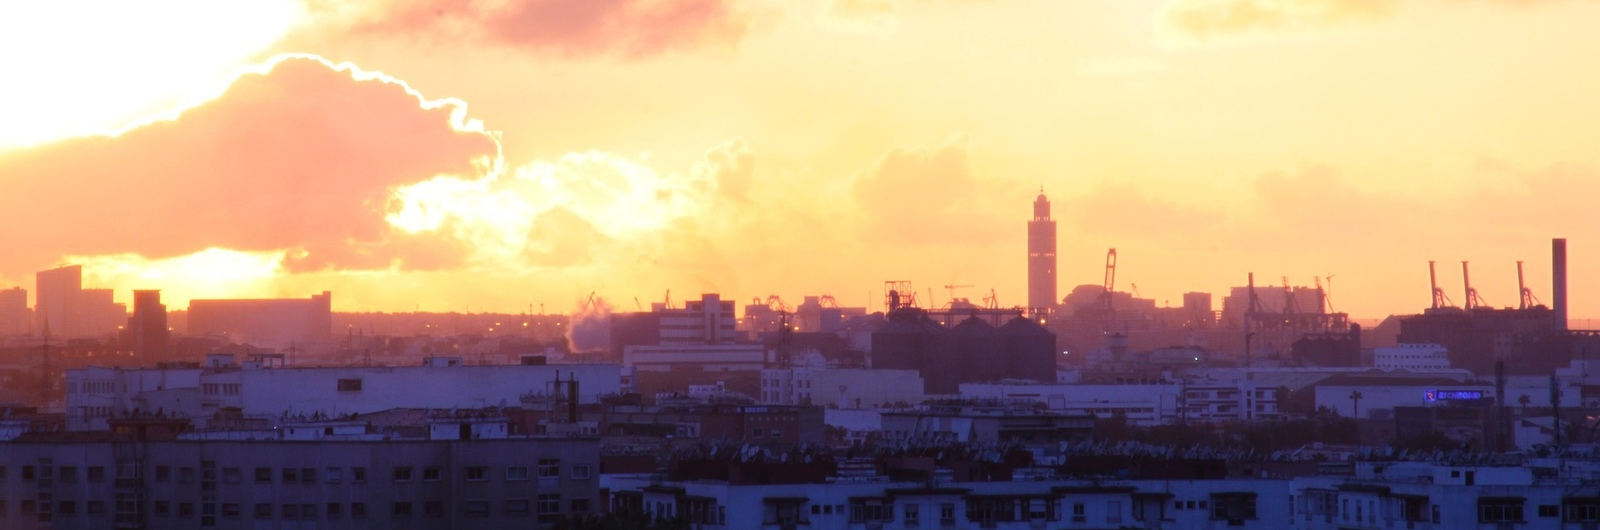 casablanca city header